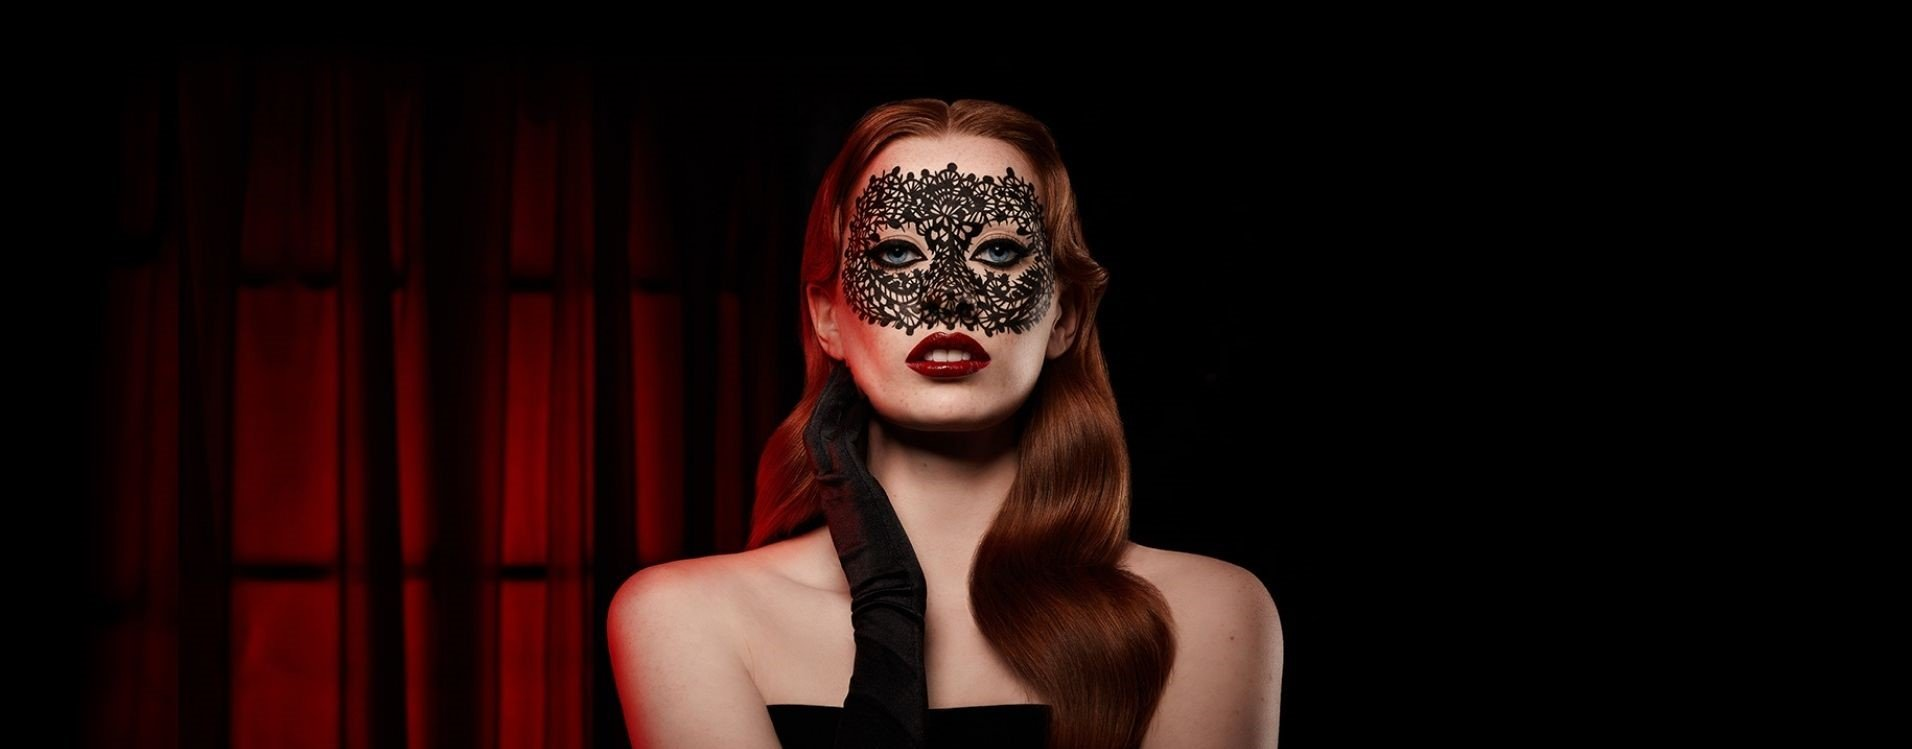 FRIGHT OR ENTICE: LACE MASK HOW TO